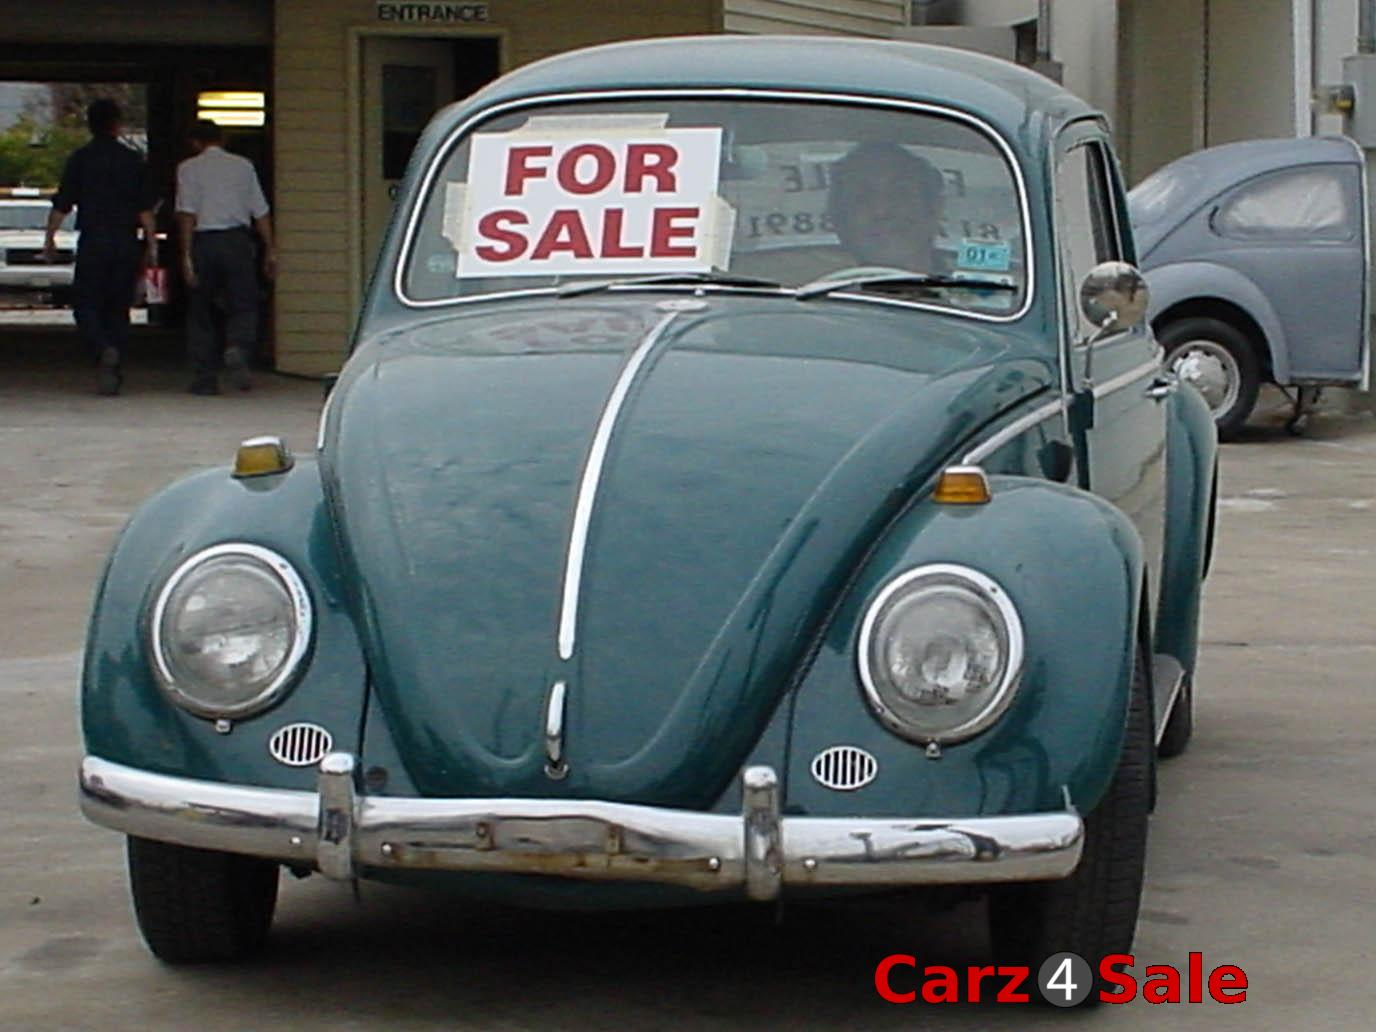 Fantastic Cars For Sell In Usa Frieze - Classic Cars Ideas - boiq.info